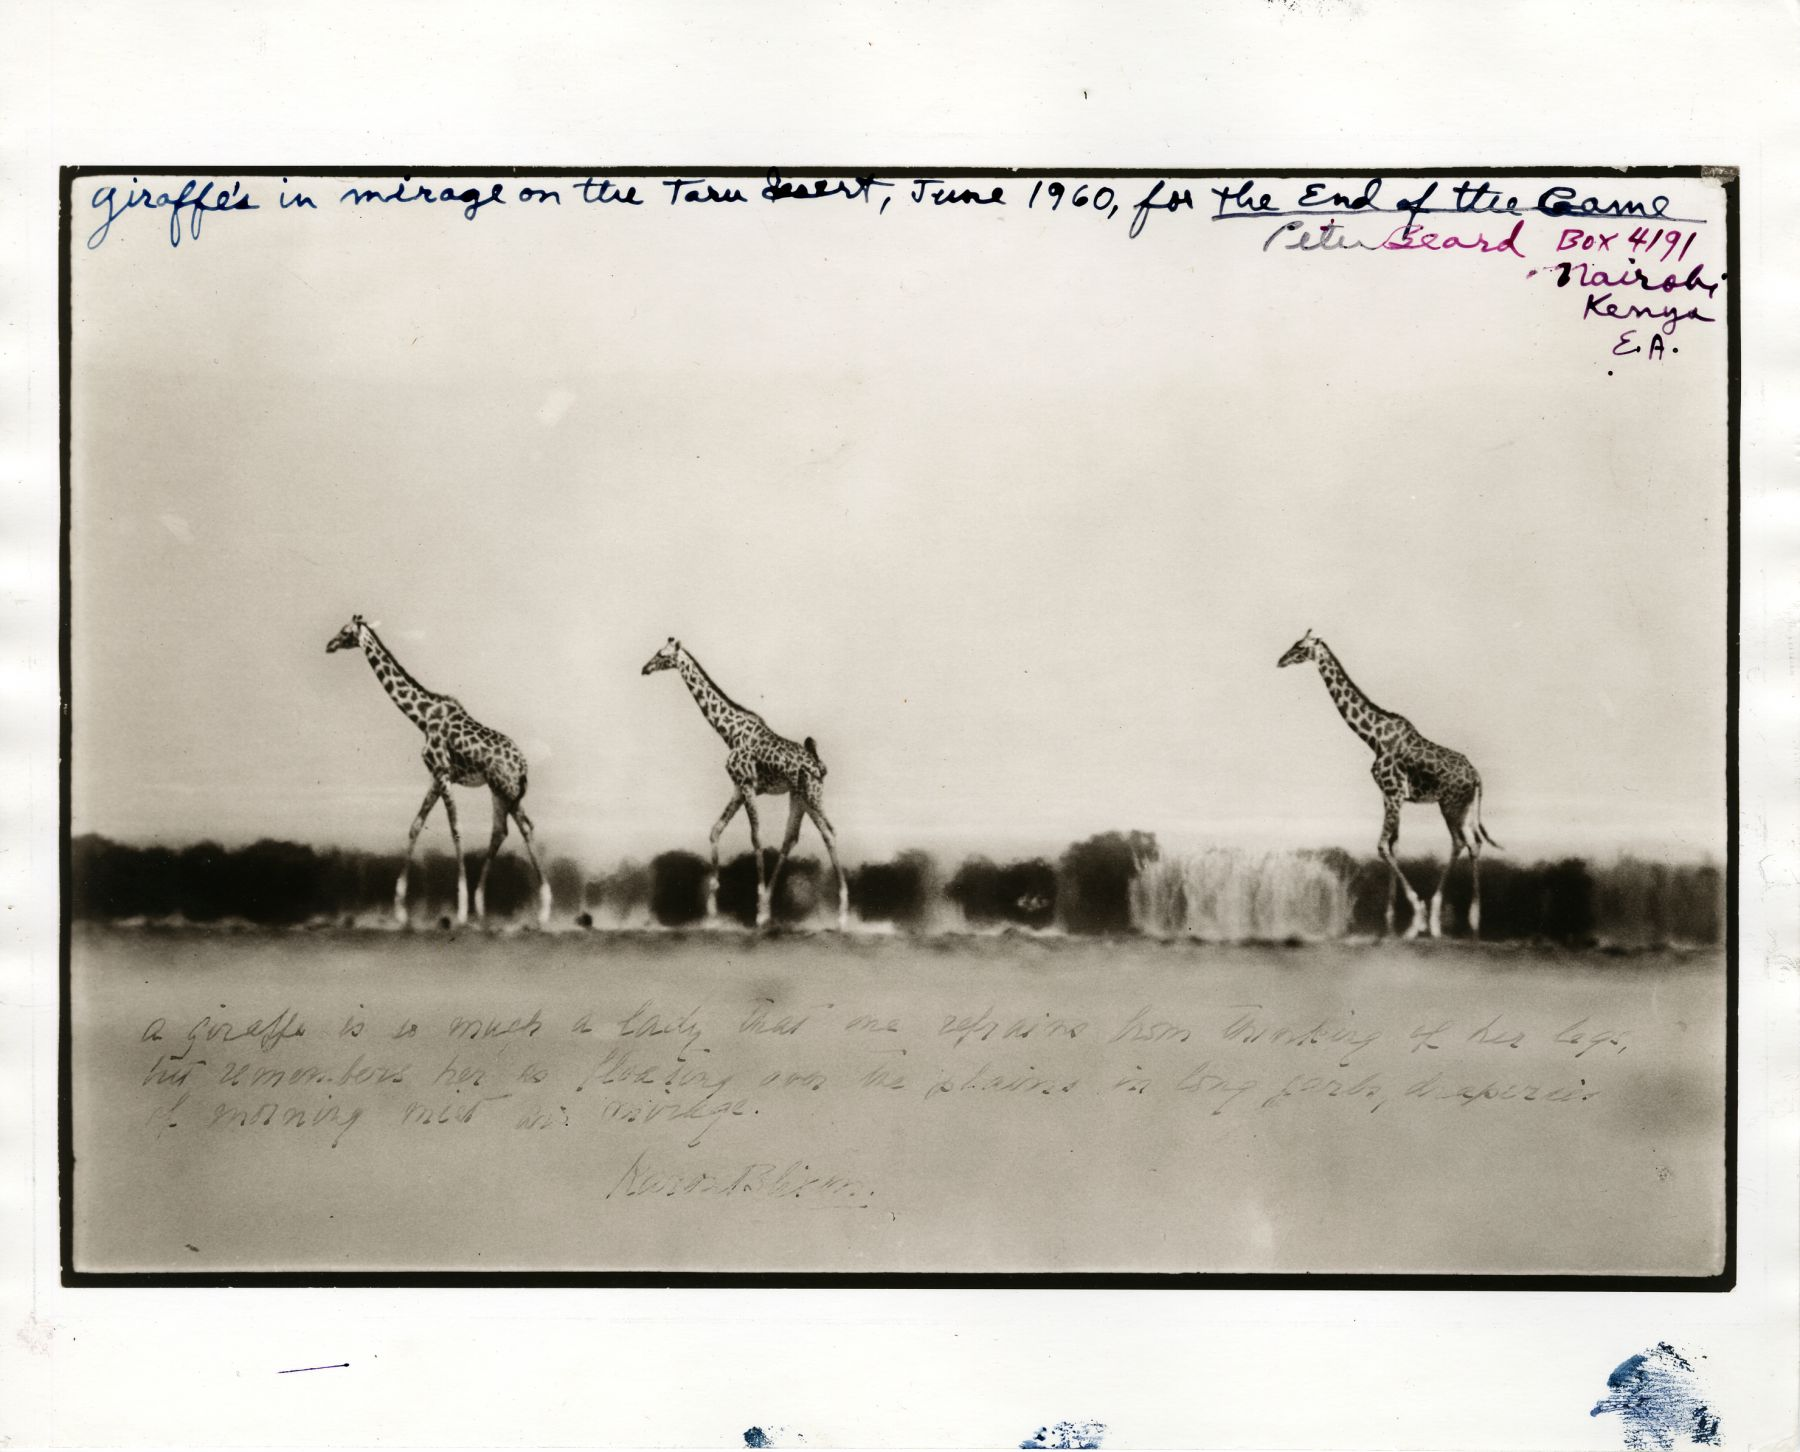 Giraffes in the Mirage on the Taru Desert, June, 1960, Silver Gelatin Photograph with Ink